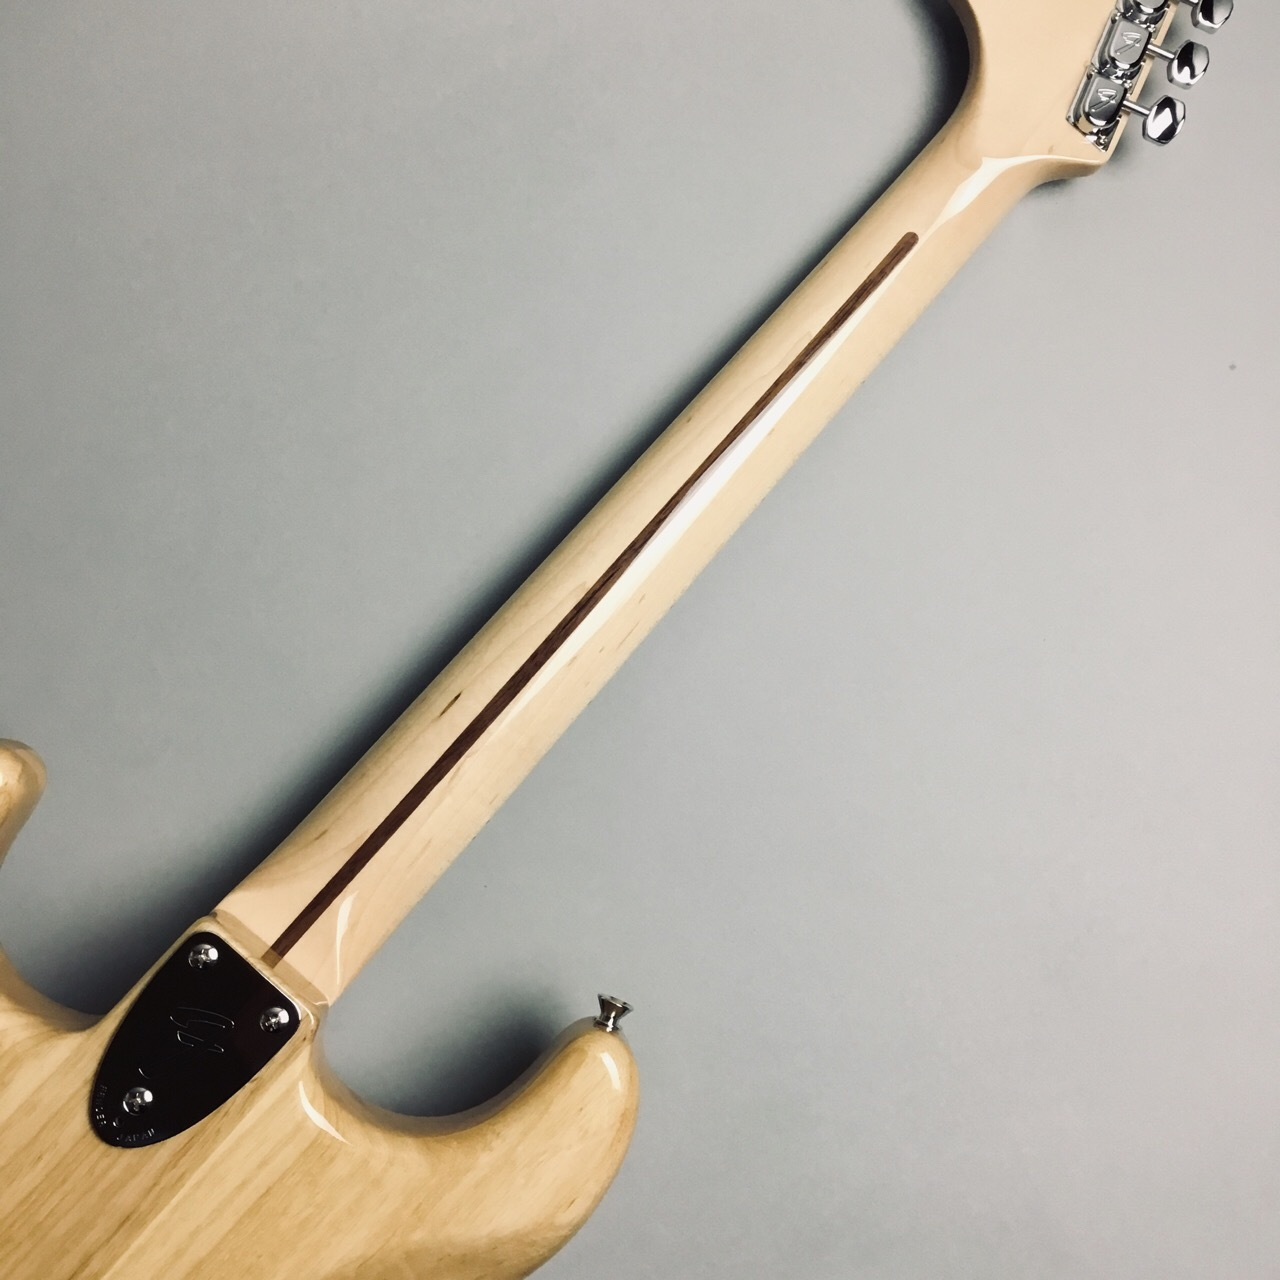 MADE IN JAPAN TRADITIONAL 70S STRATOCASTERの全体画像(縦)